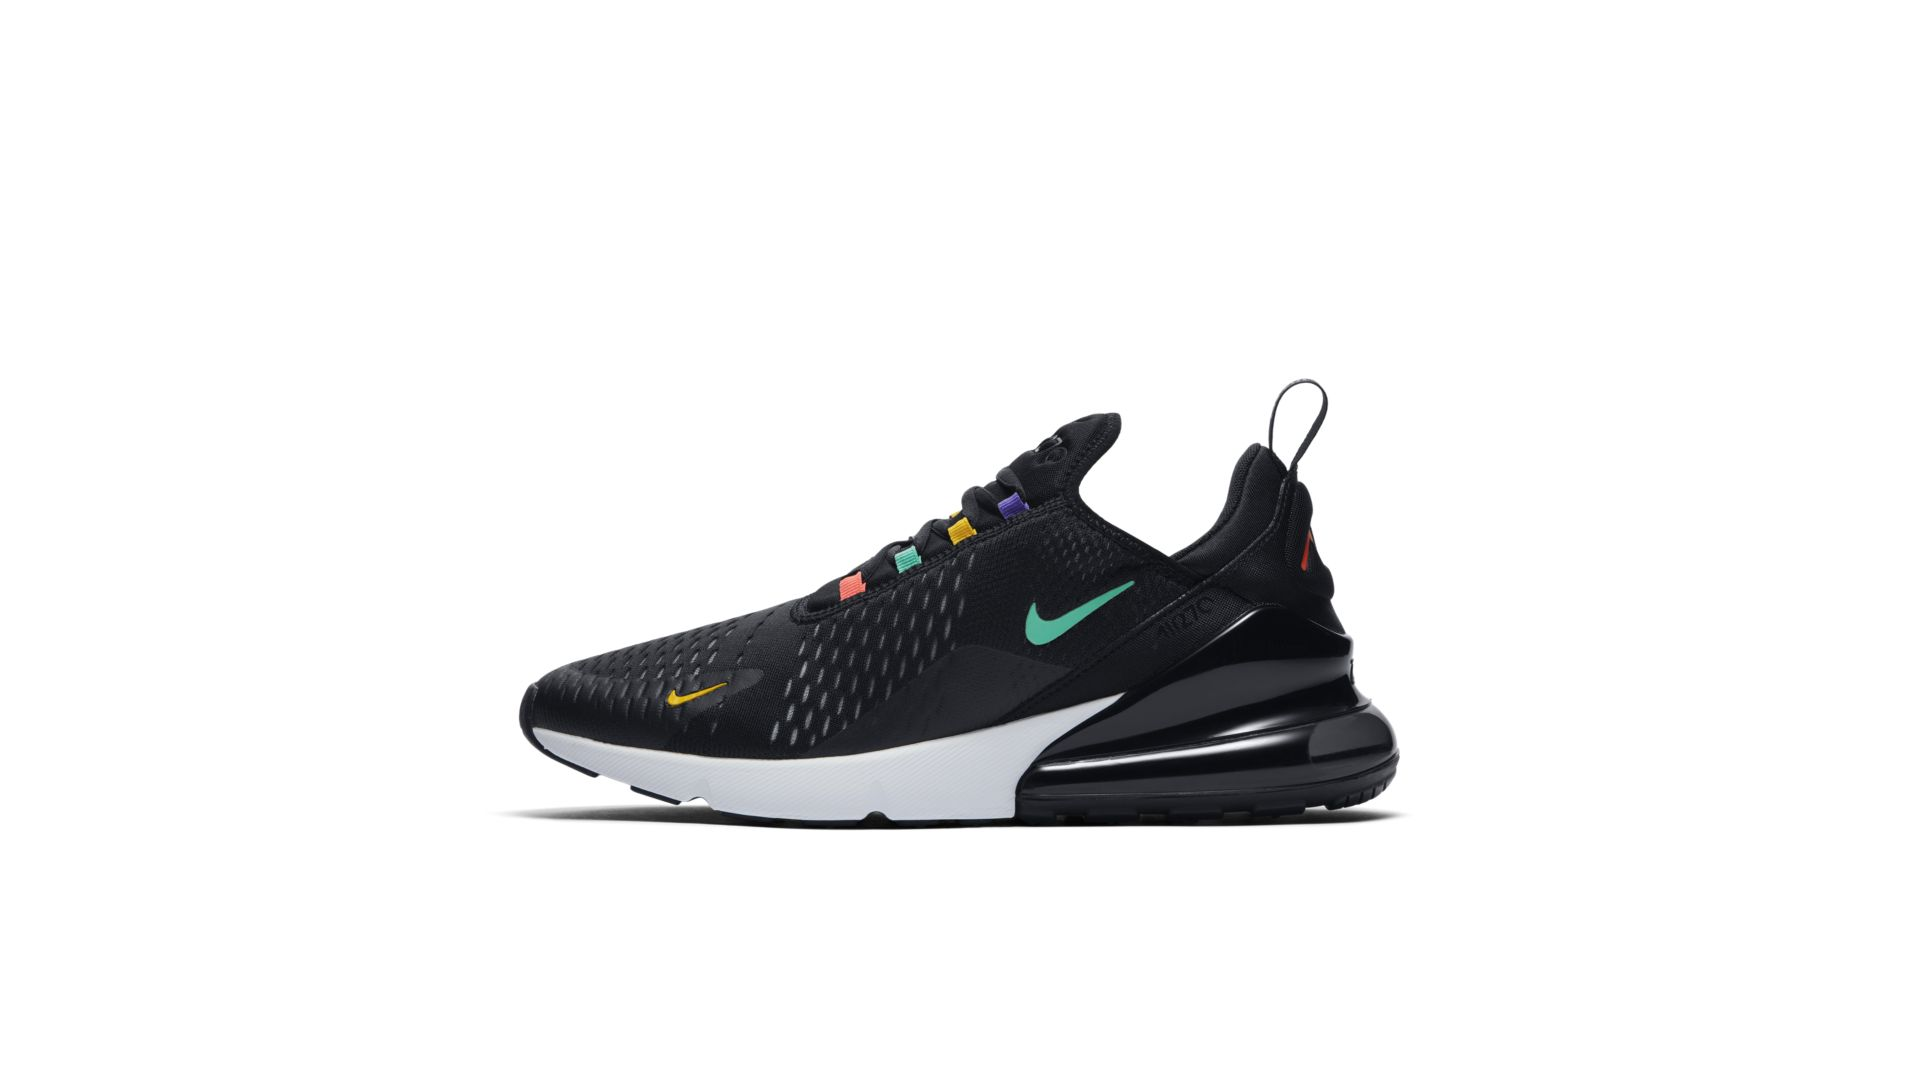 Nike Air Max 270 Black Multi-Color (AH8050-023)